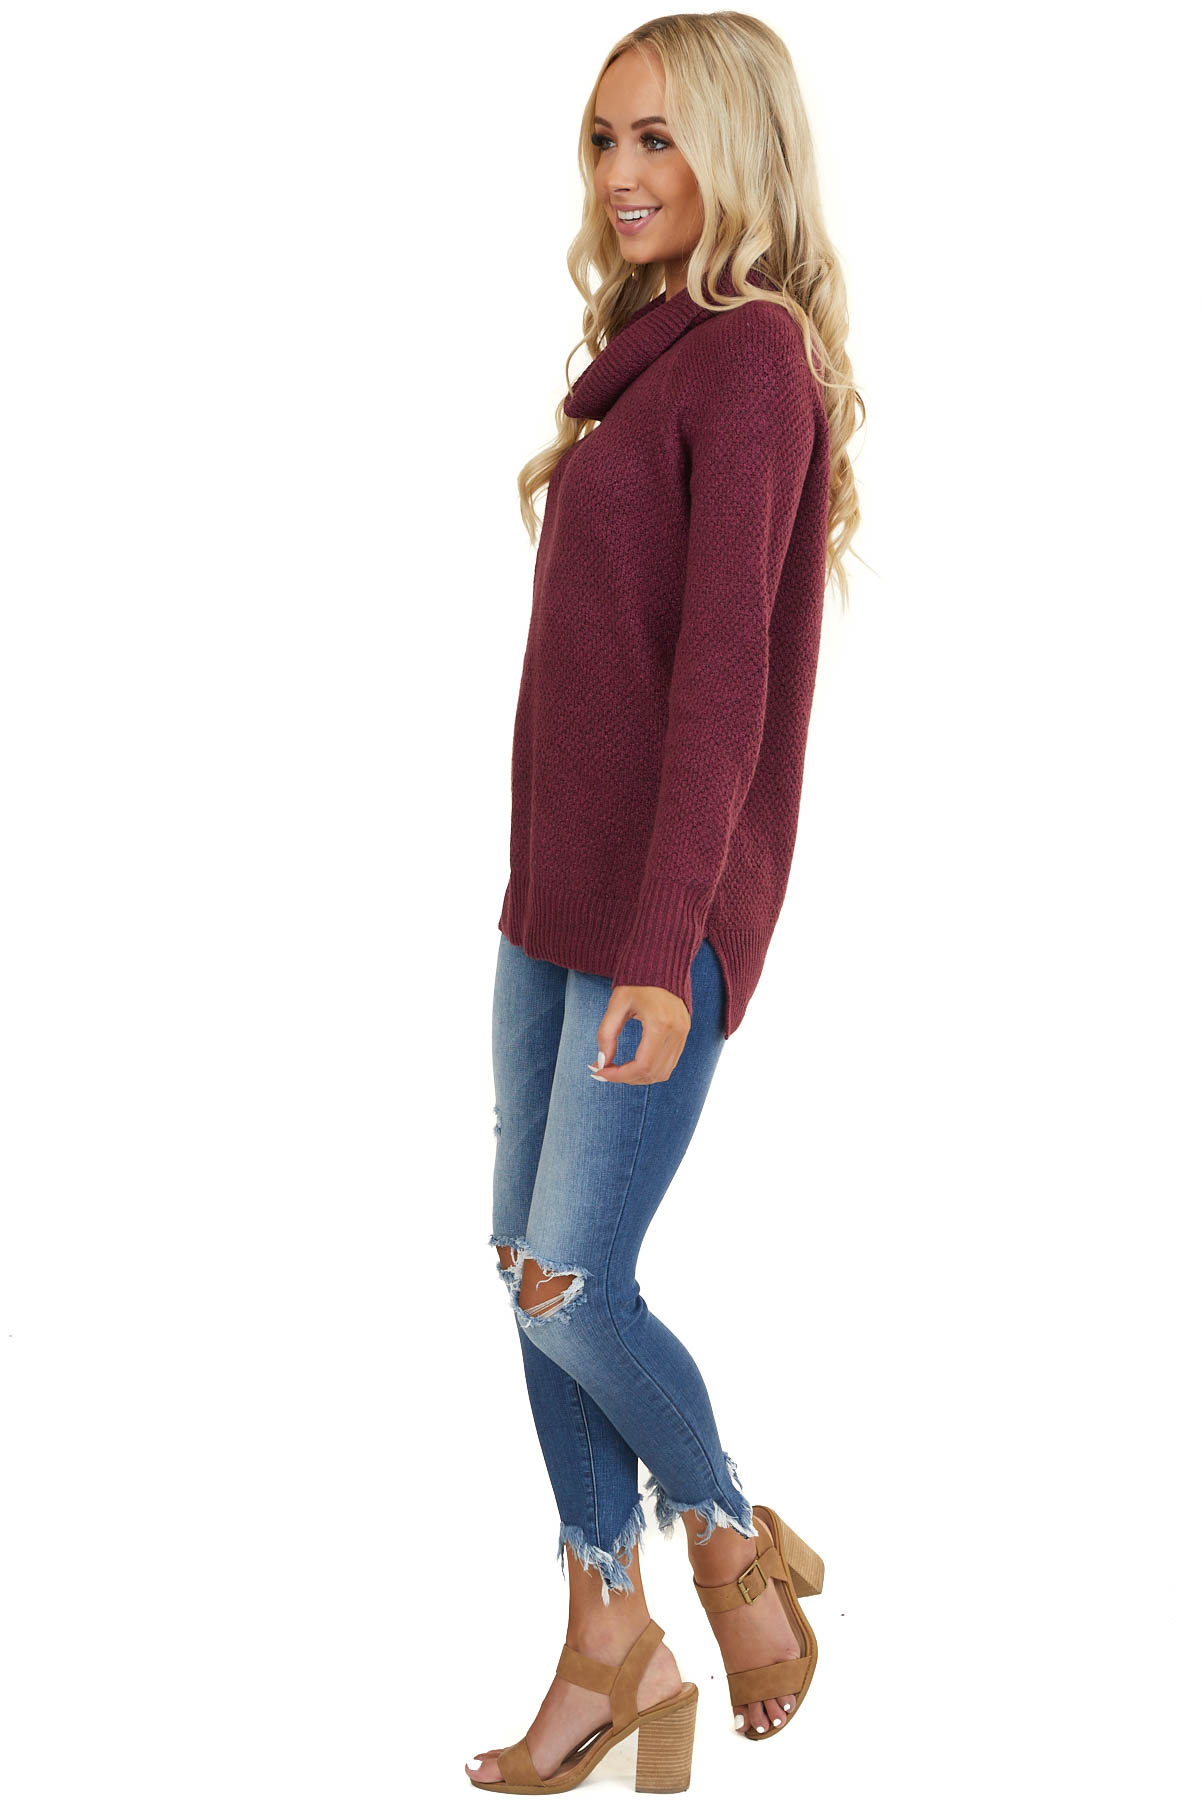 Plum Cowl Neck Knit Sweater with Long Sleeves